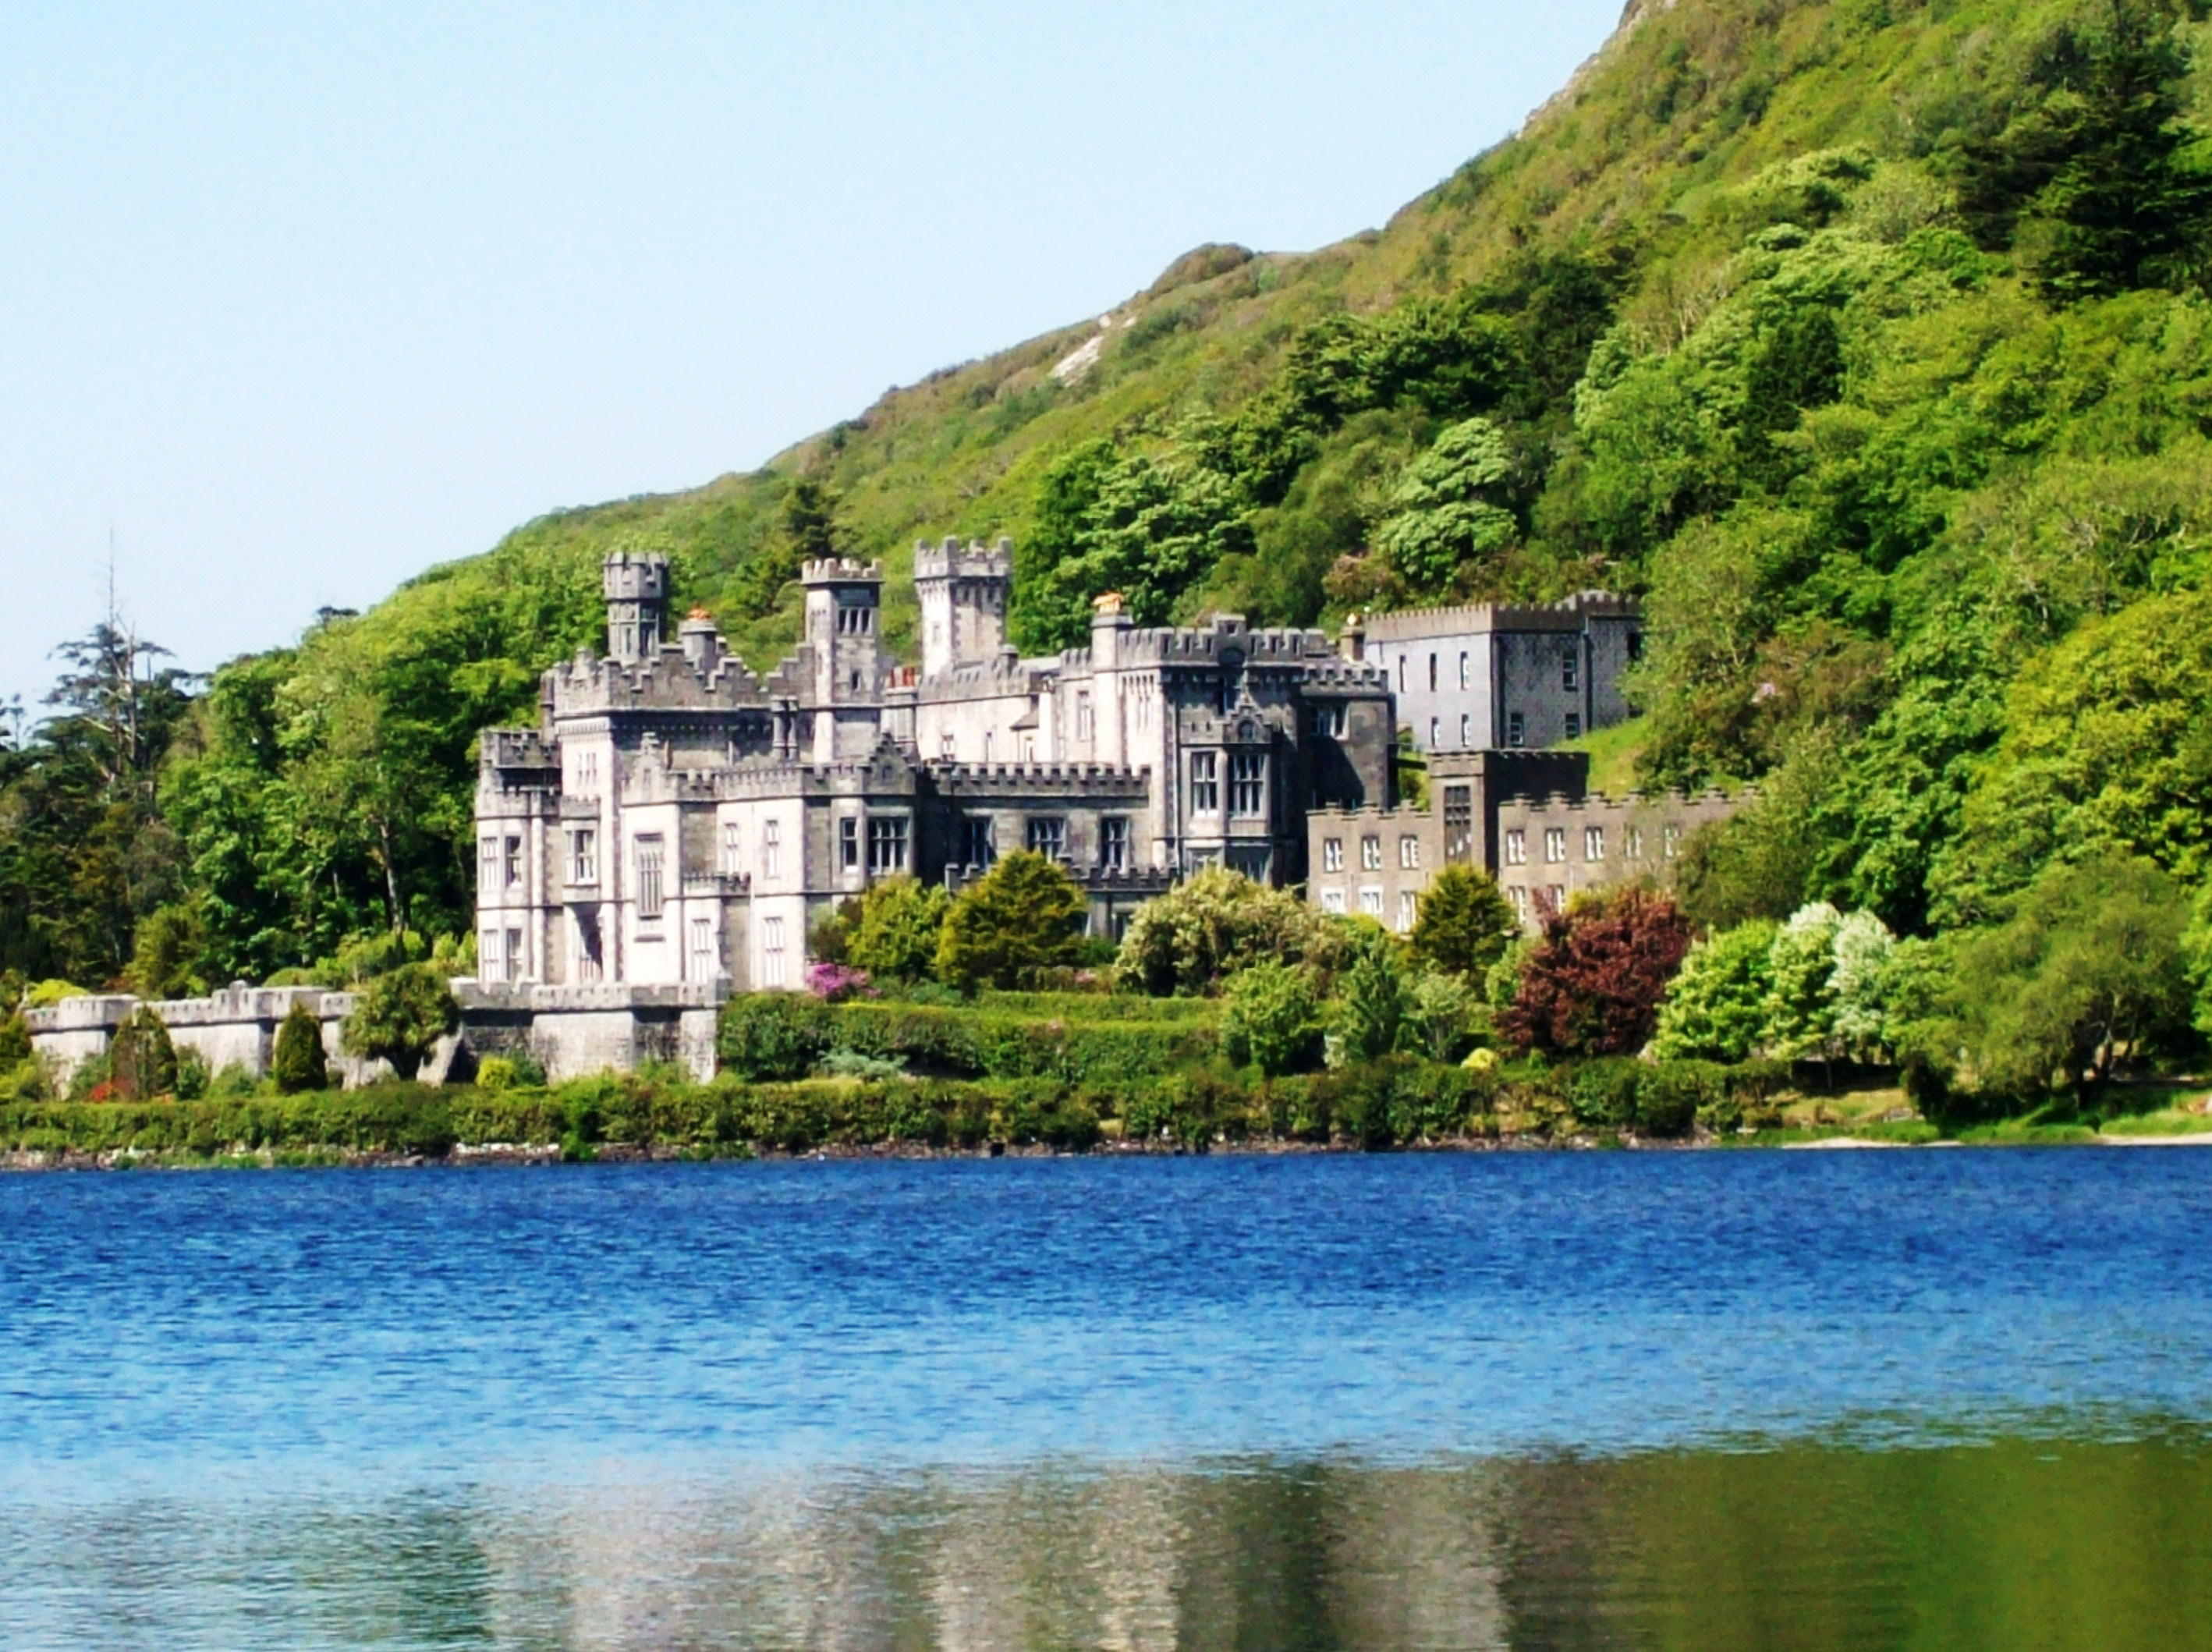 Abbey Road Wallpaper Hd Kylemore Abbey Kylemore Pass Hotel